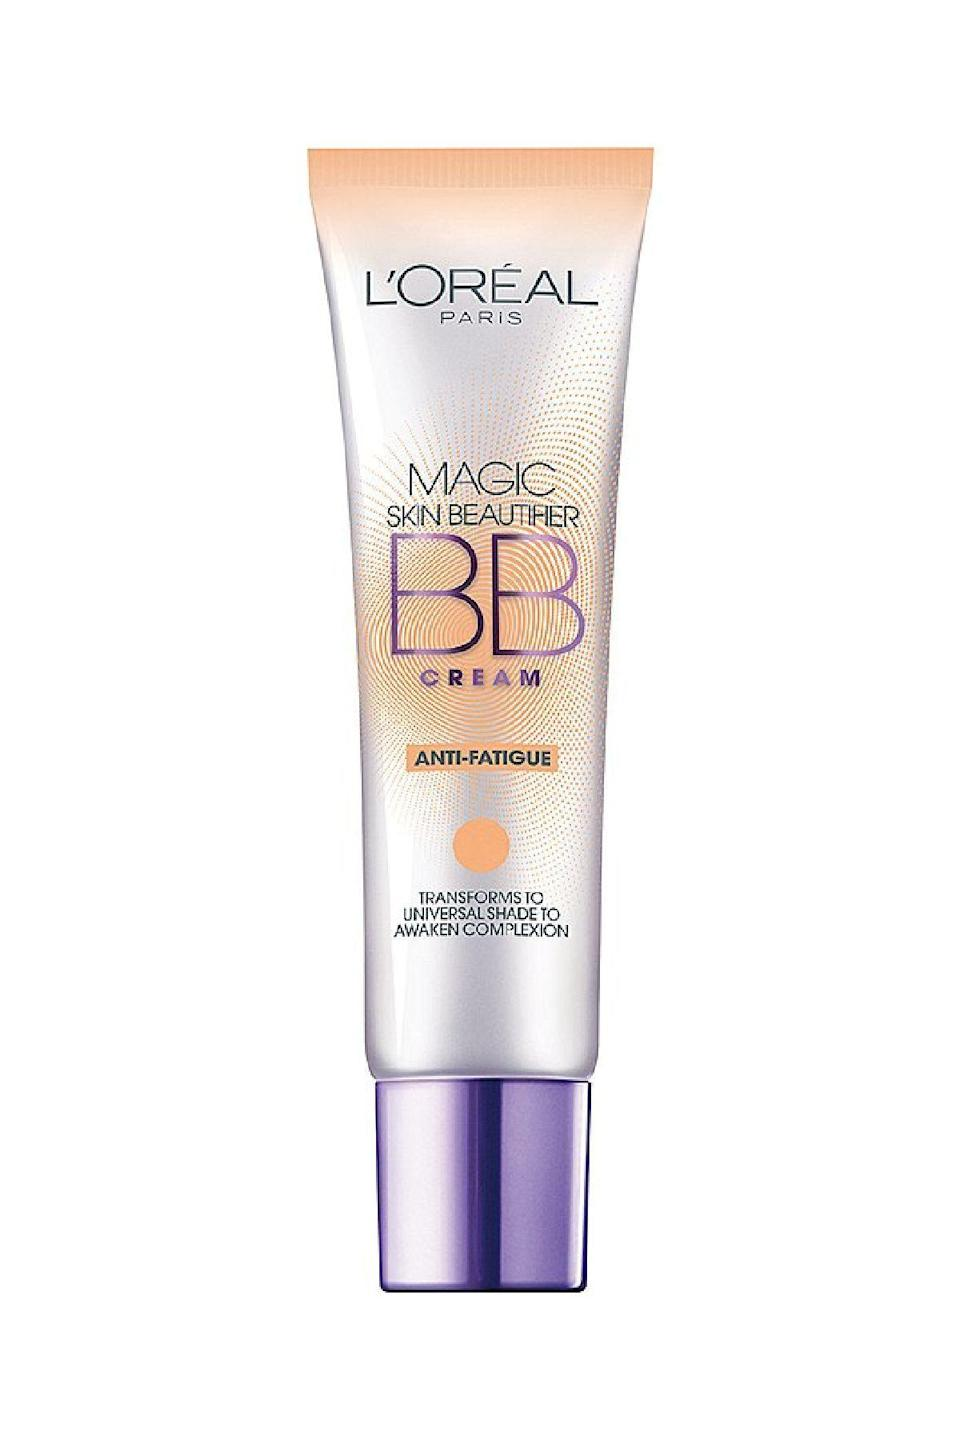 """<p><strong>L'Oreal Paris</strong></p><p>target.com</p><p><strong>$7.99</strong></p><p><a href=""""https://www.target.com/p/l-or-al-paris-magic-bb-correctors-1-00-fl-oz-anti-redness-820/-/A-15332367"""" rel=""""nofollow noopener"""" target=""""_blank"""" data-ylk=""""slk:SHOP IT"""" class=""""link rapid-noclick-resp"""">SHOP IT</a></p><p>While this product only comes in one shade, blending it into nearly any skin tone results in a brightened, evened complexion. Those with both fair or deeper complexions did prefer this layered under a daily foundation or bronzer.</p>"""